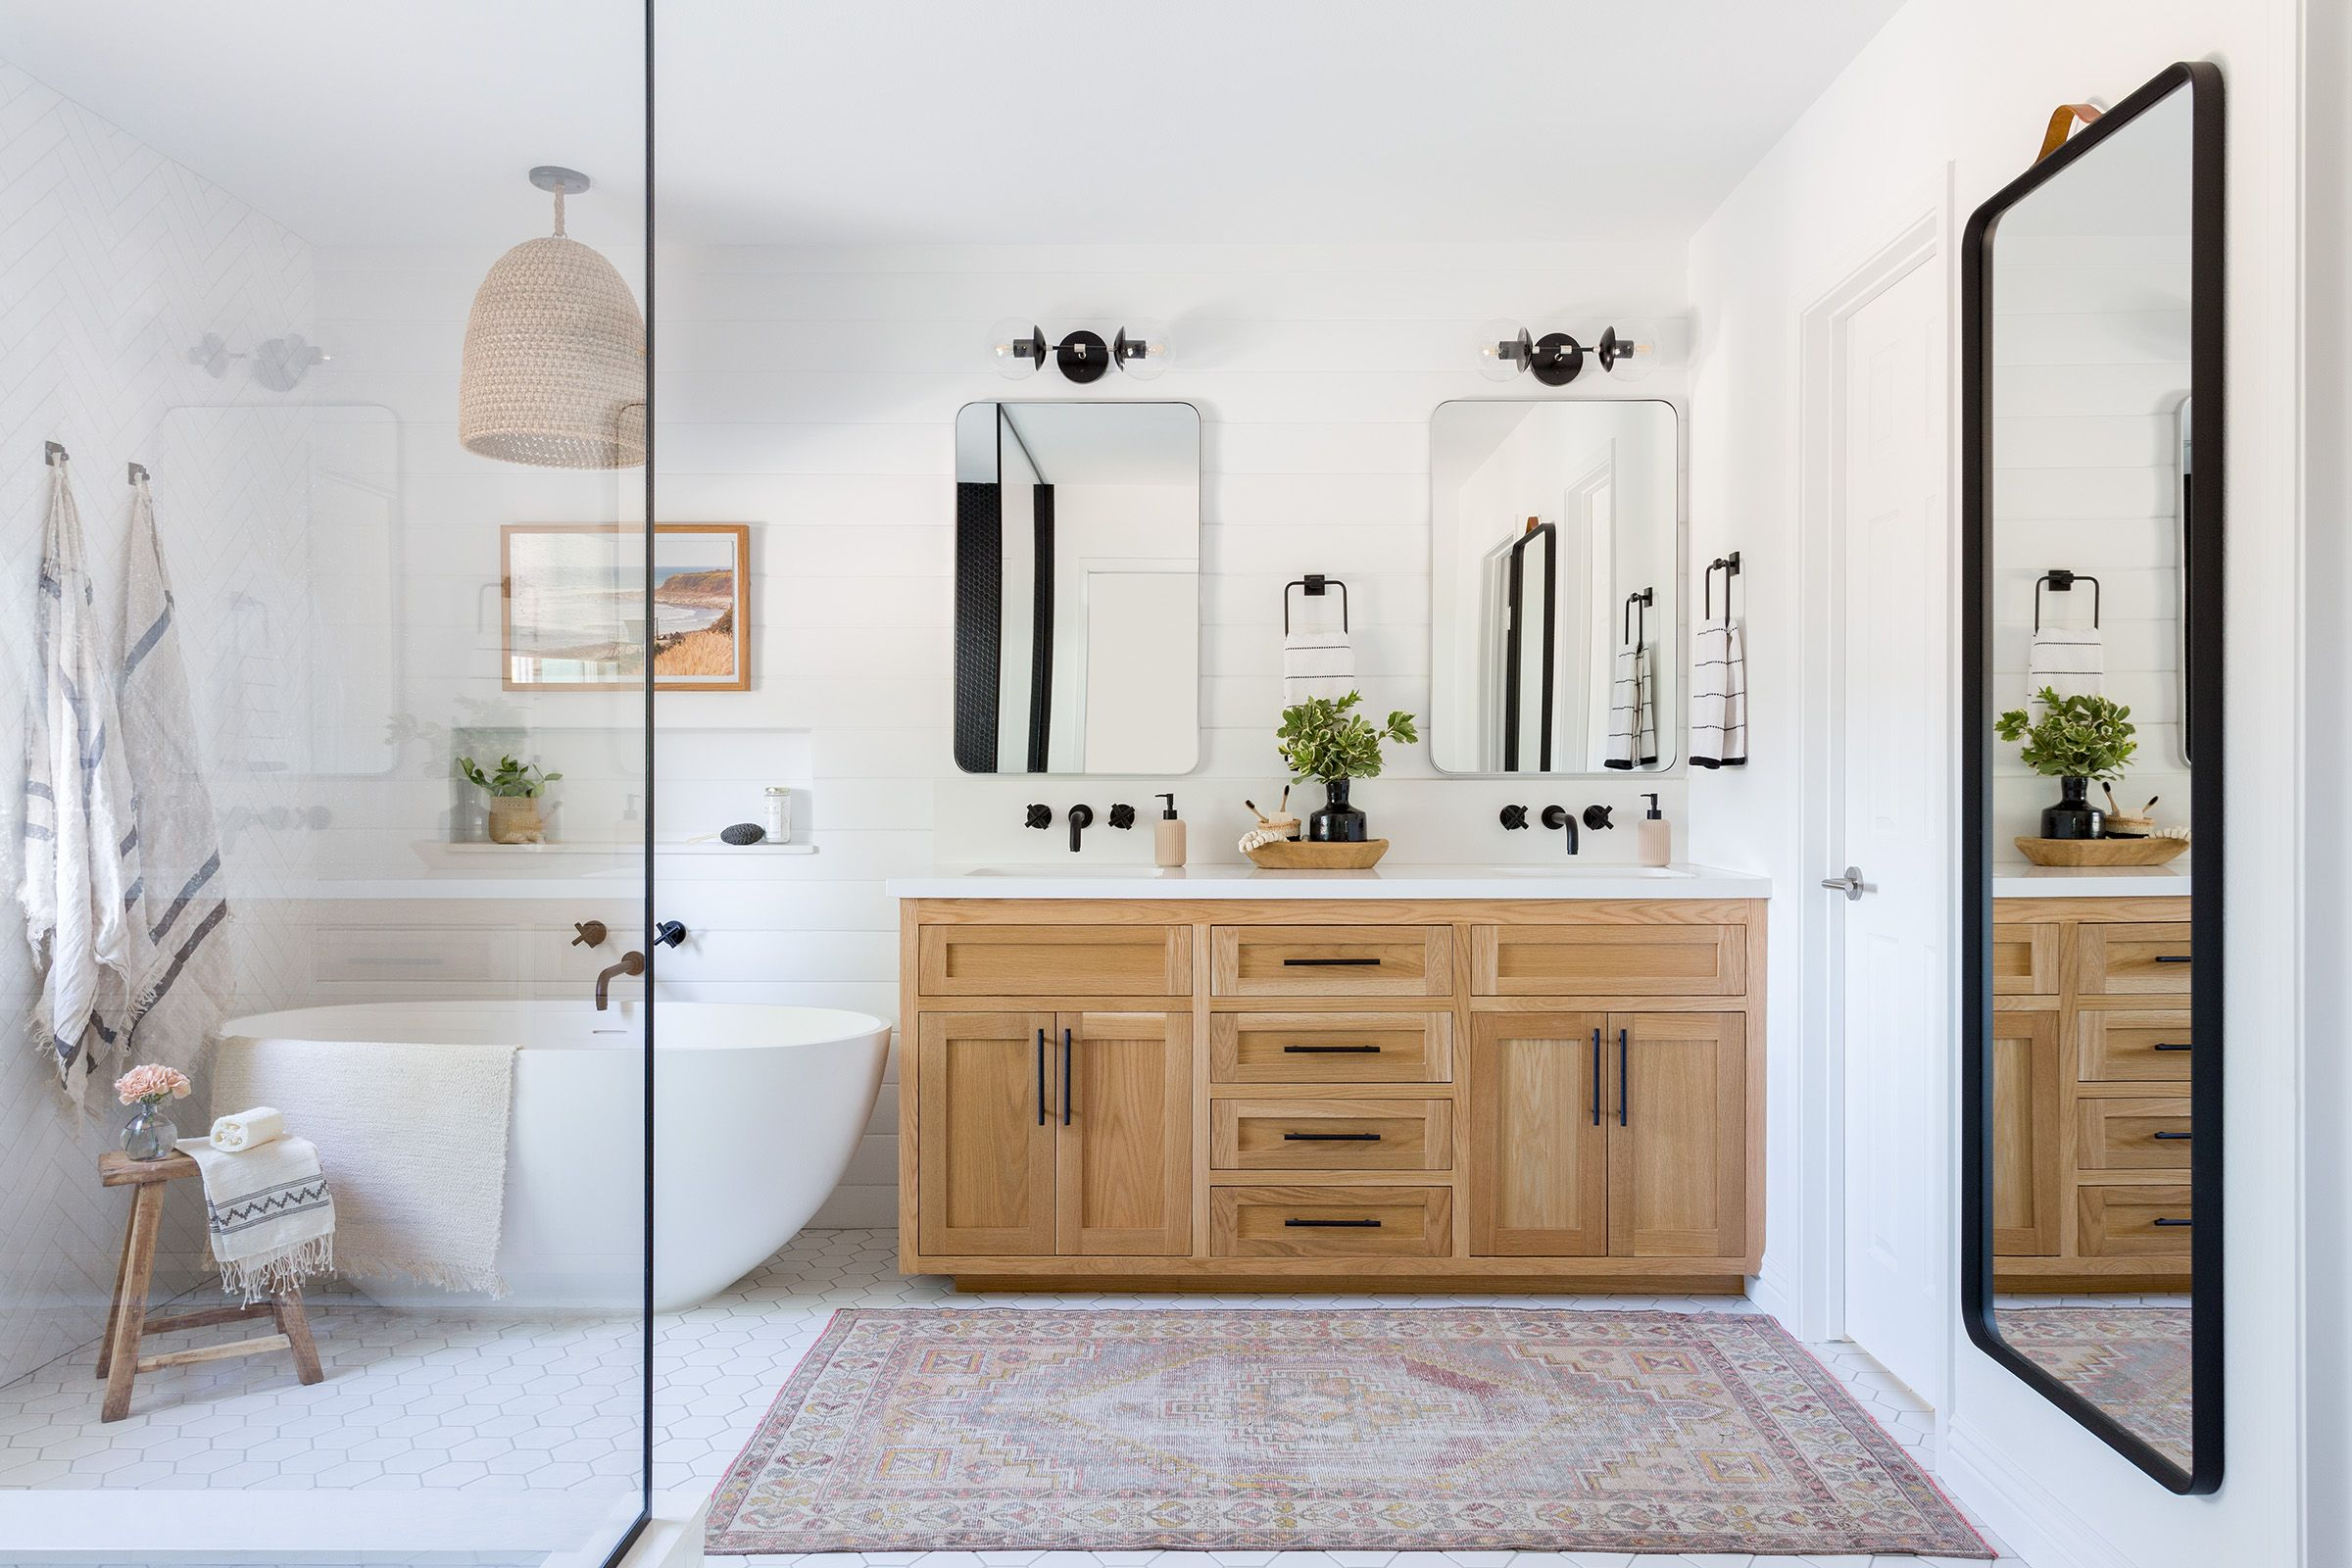 A Large Master Bathroom Designed With Personality Rue Master Bathroom Design Home Bathrooms Remodel